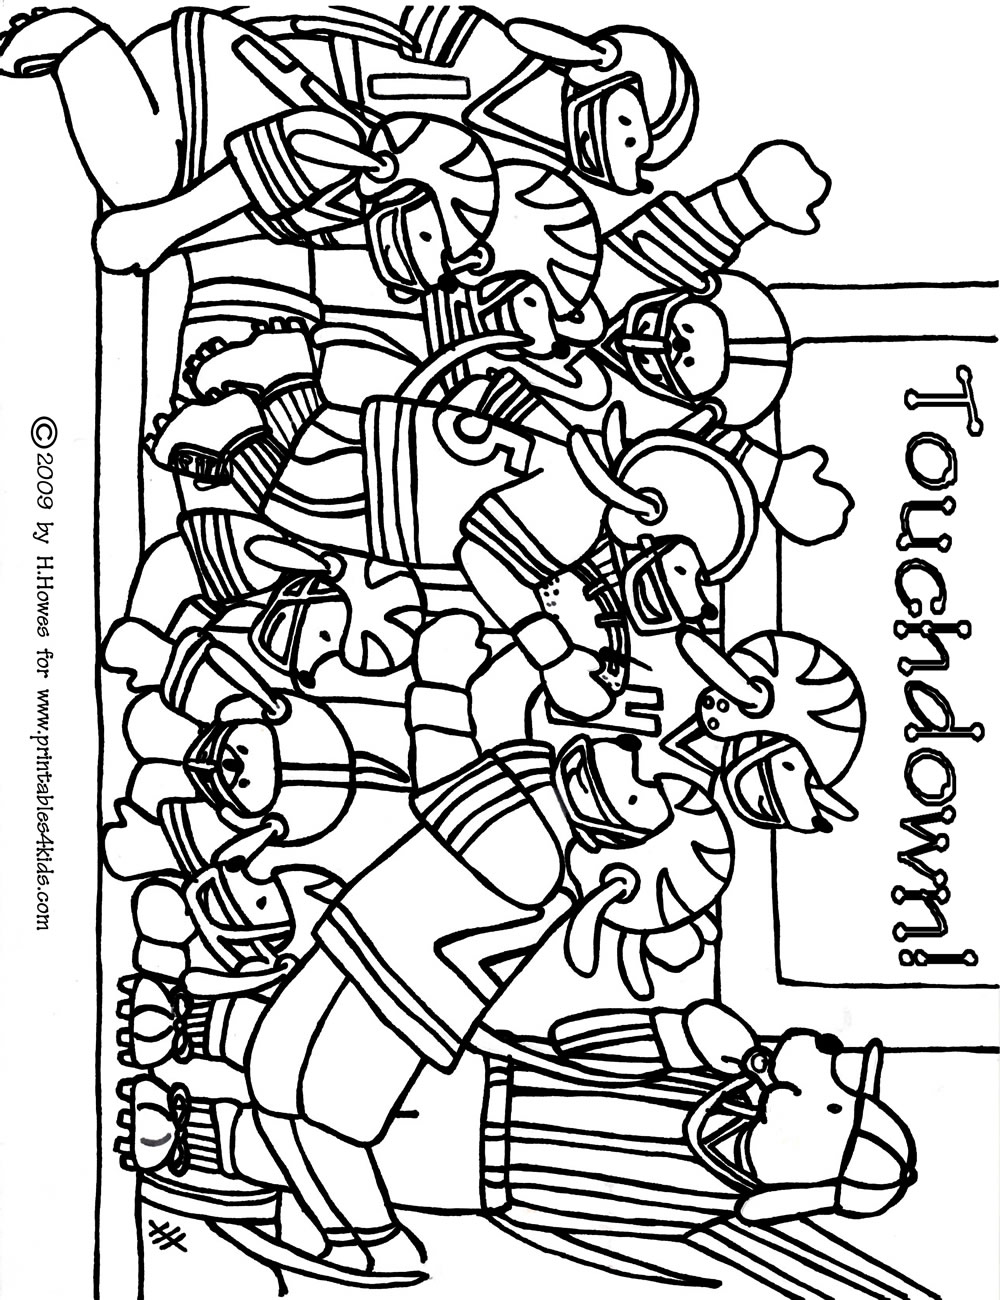 football coloring pages free printable 73 best sports coloring pages images on pinterest pages printable football coloring free